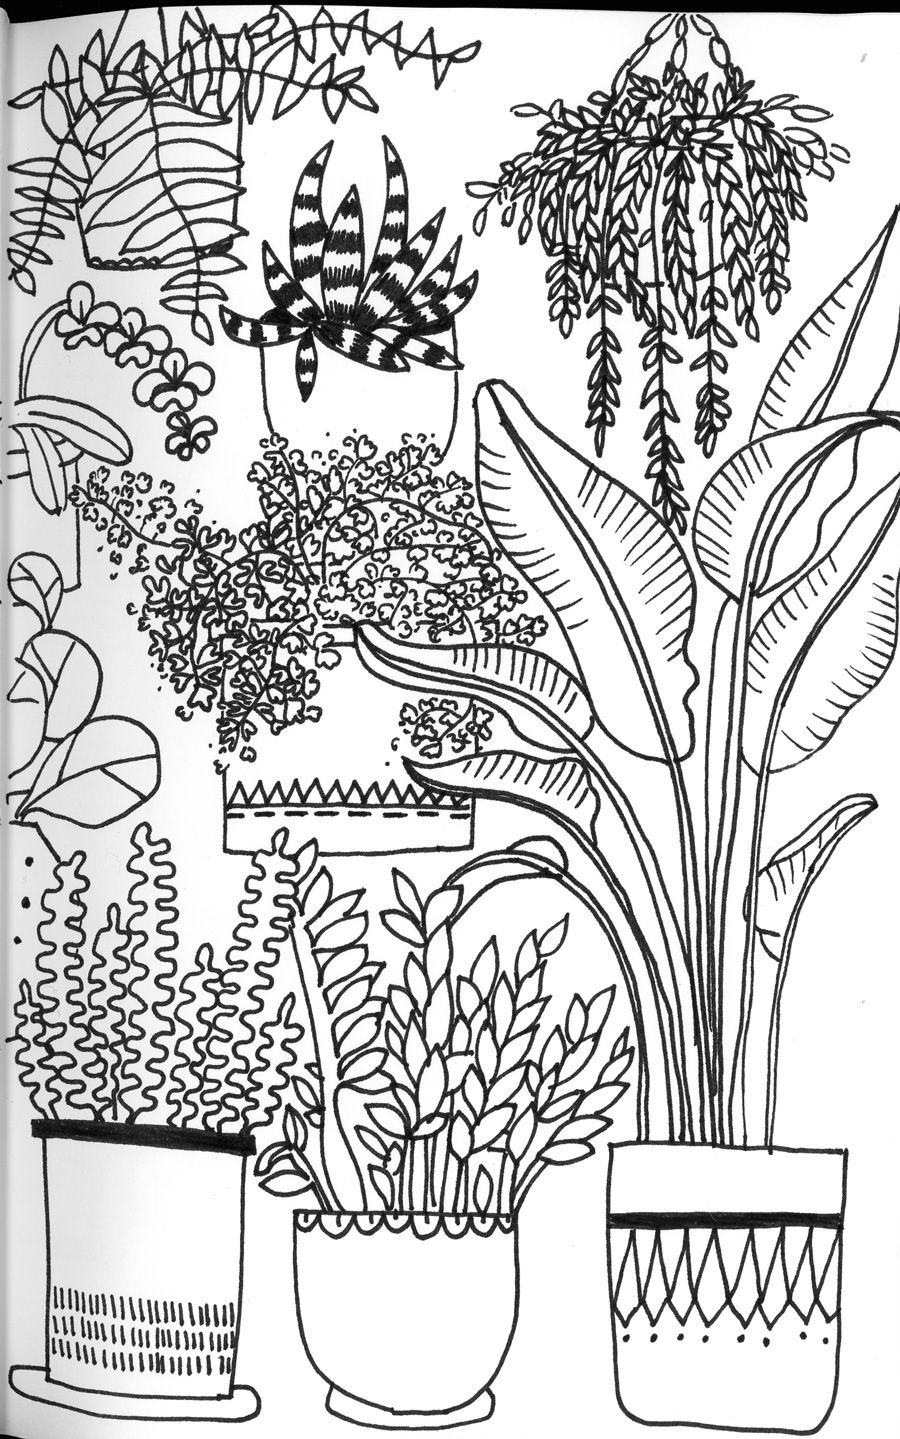 House Plants - day 24 of the January drawing challenge ...